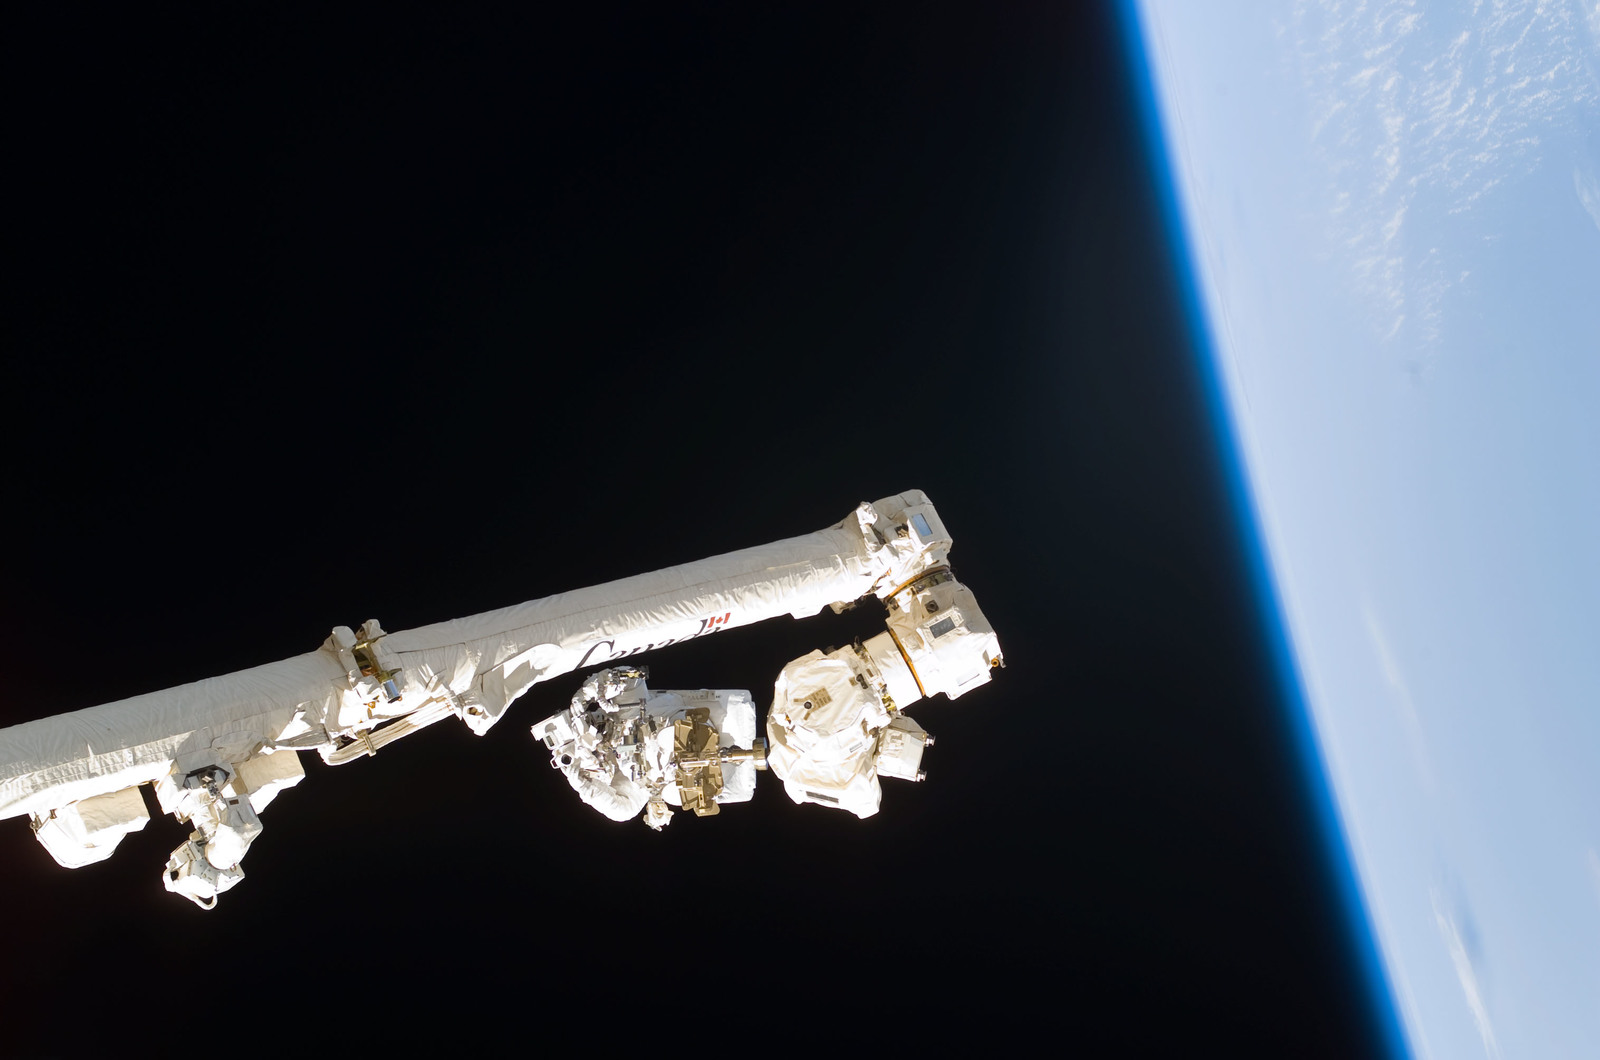 S114E6266 - STS-114 - Robinson on SSRMS Canadarm2 during EVA 3